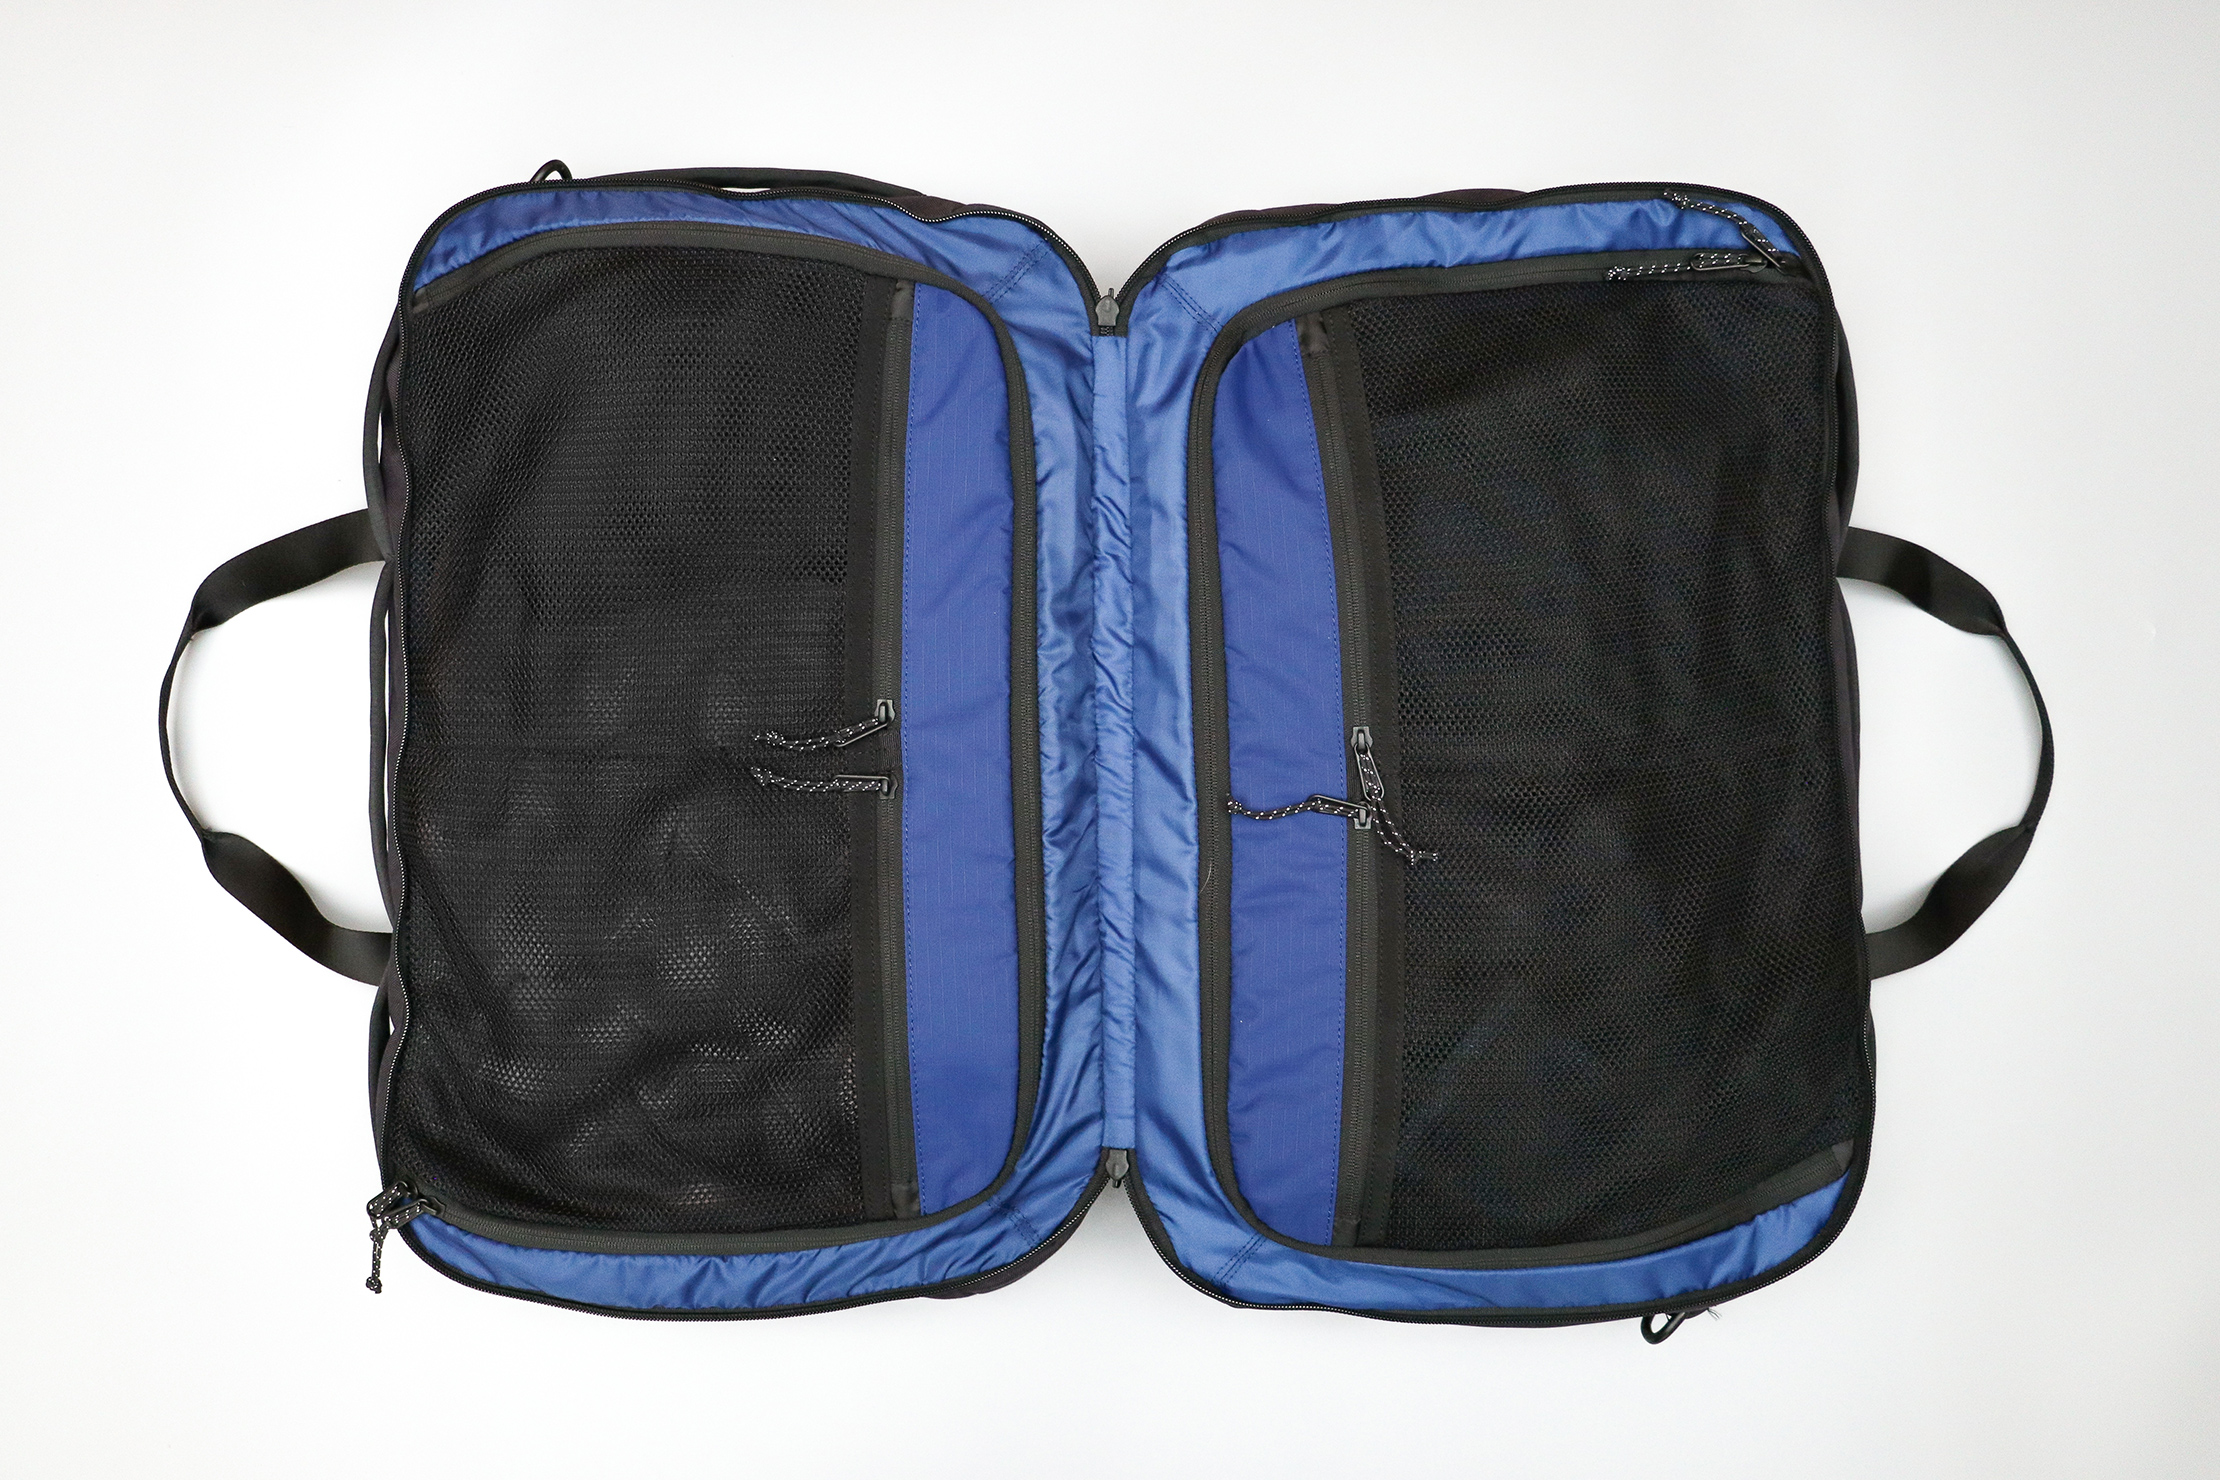 Timbuk2 Never Check Backpack Duffel Clamshell Opening